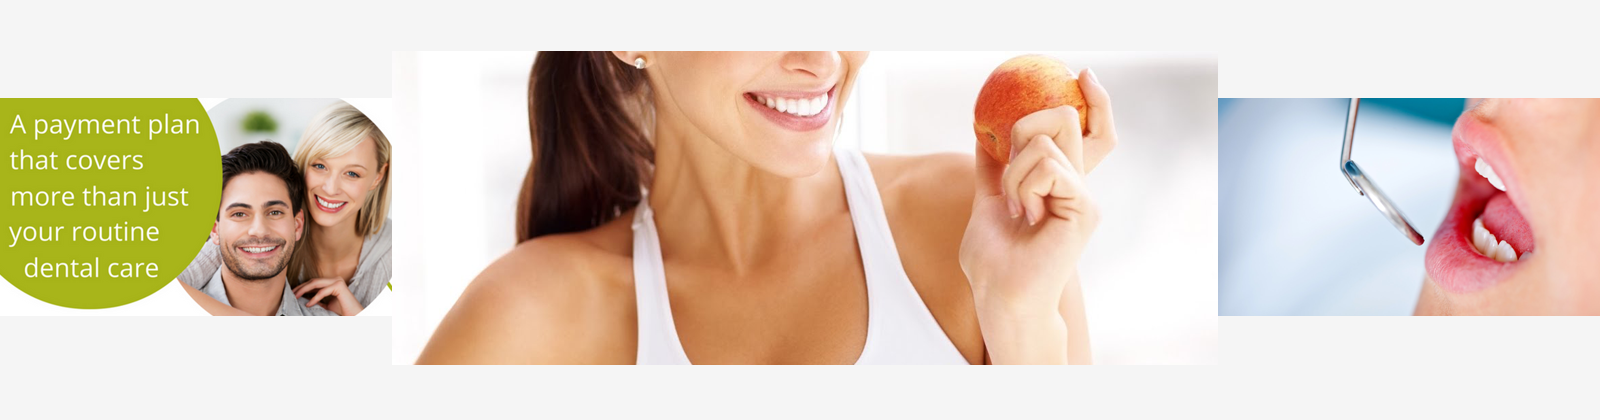 a lady holding up an apple with a smile